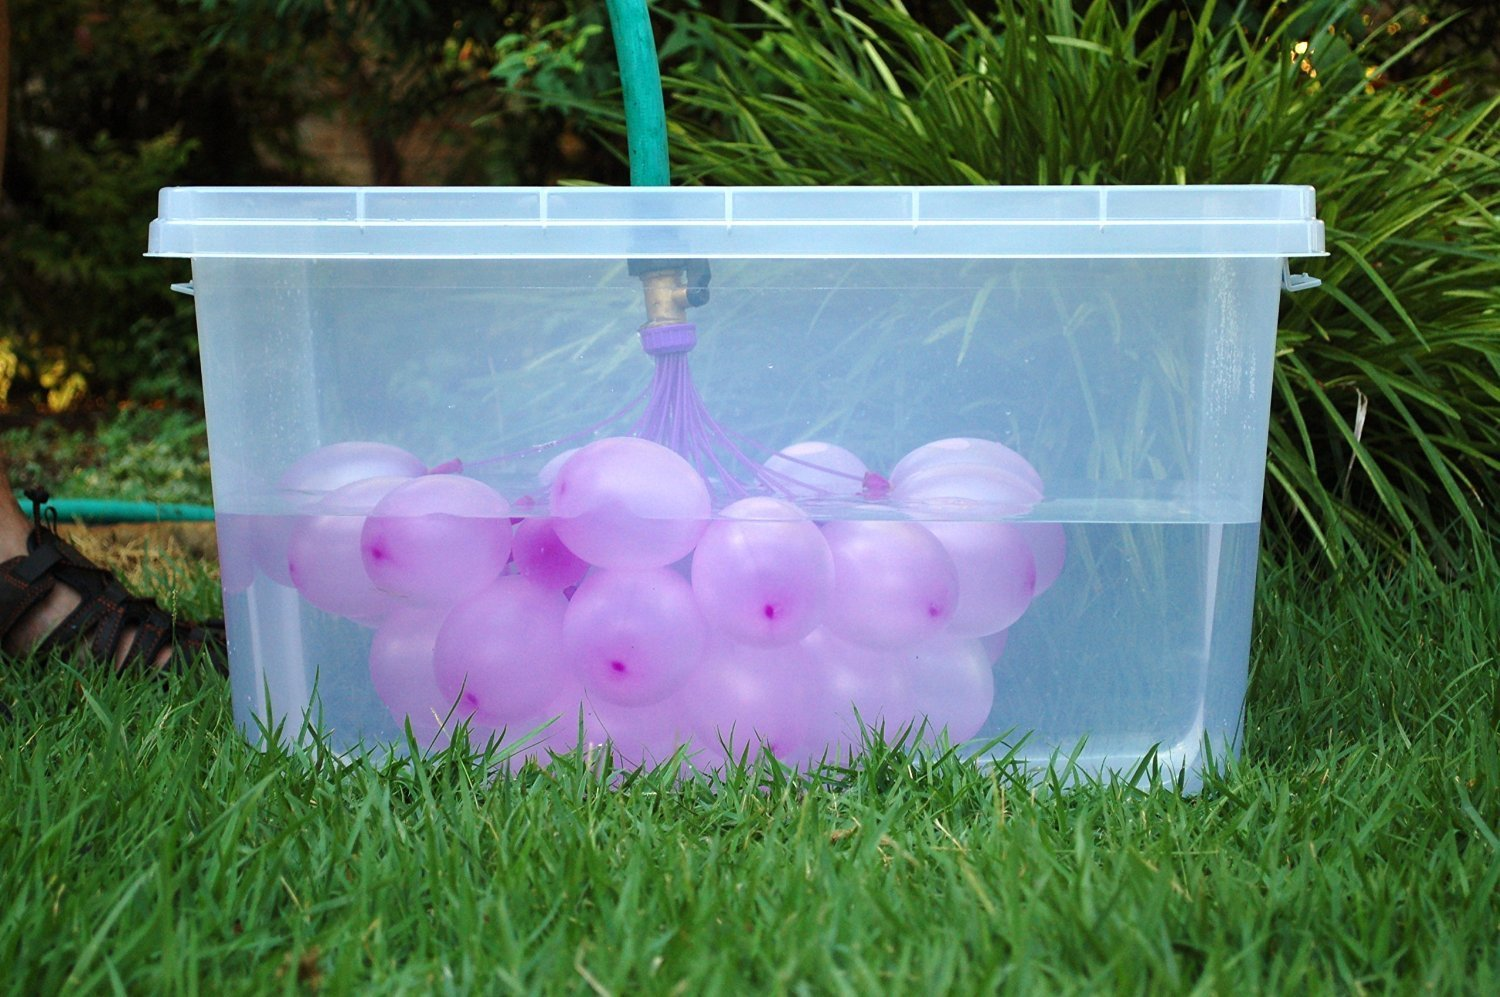 water balloons filling in tub